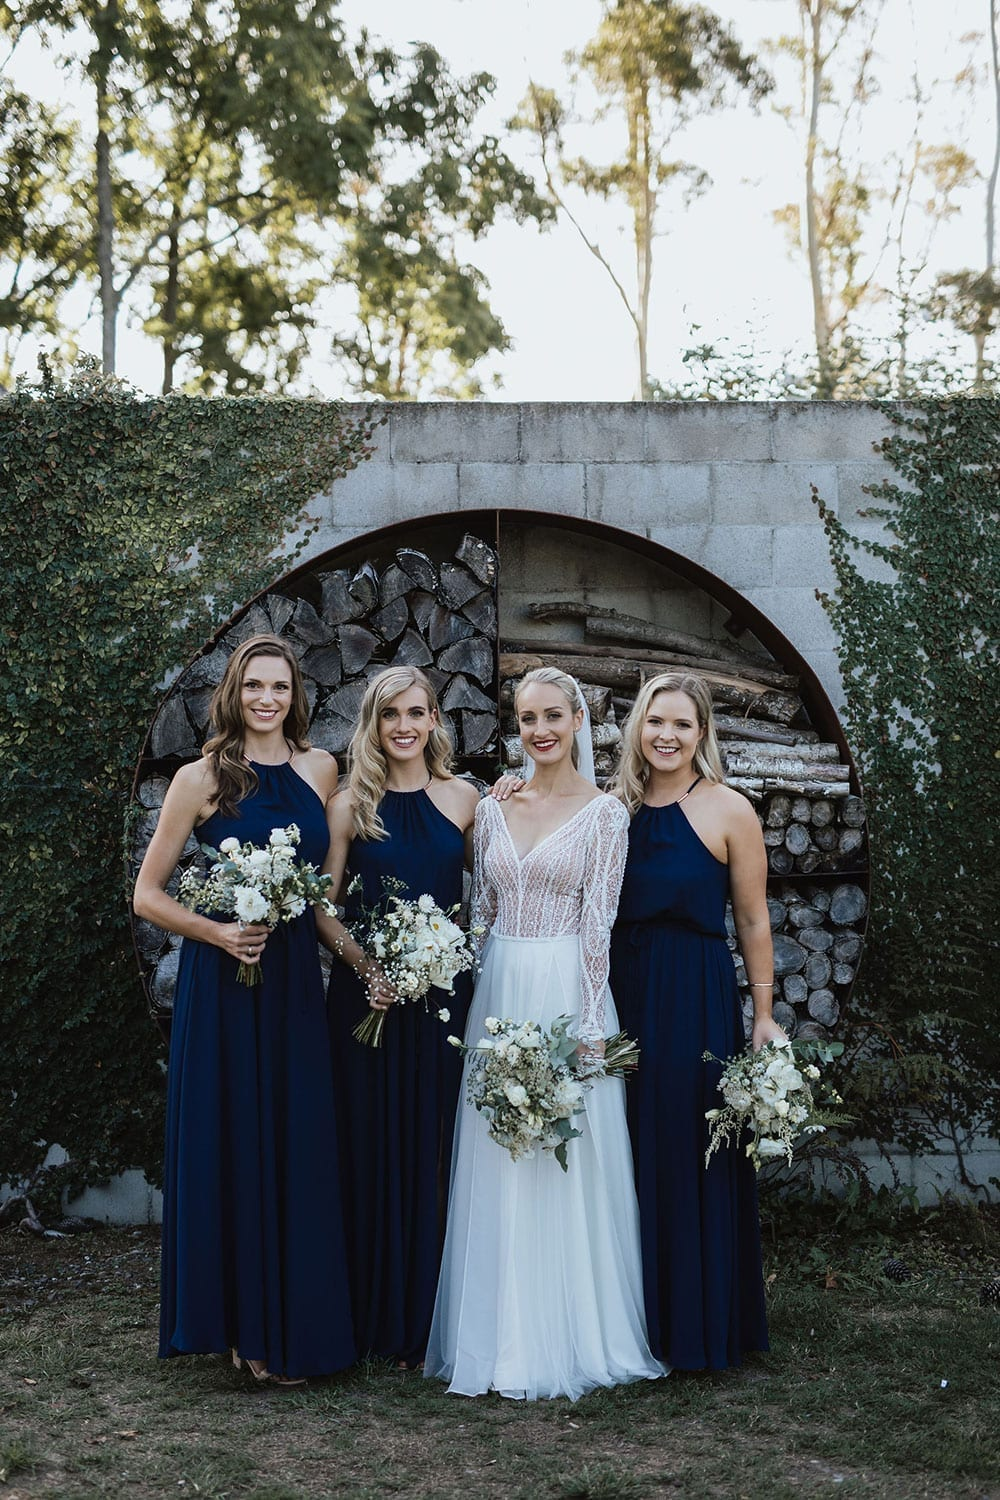 Vinka Design Features Real Weddings - Bride in custom made gown with bold lace bodice with fitted, long, beaded lace sleeves and floating skirt. With bridesmaids